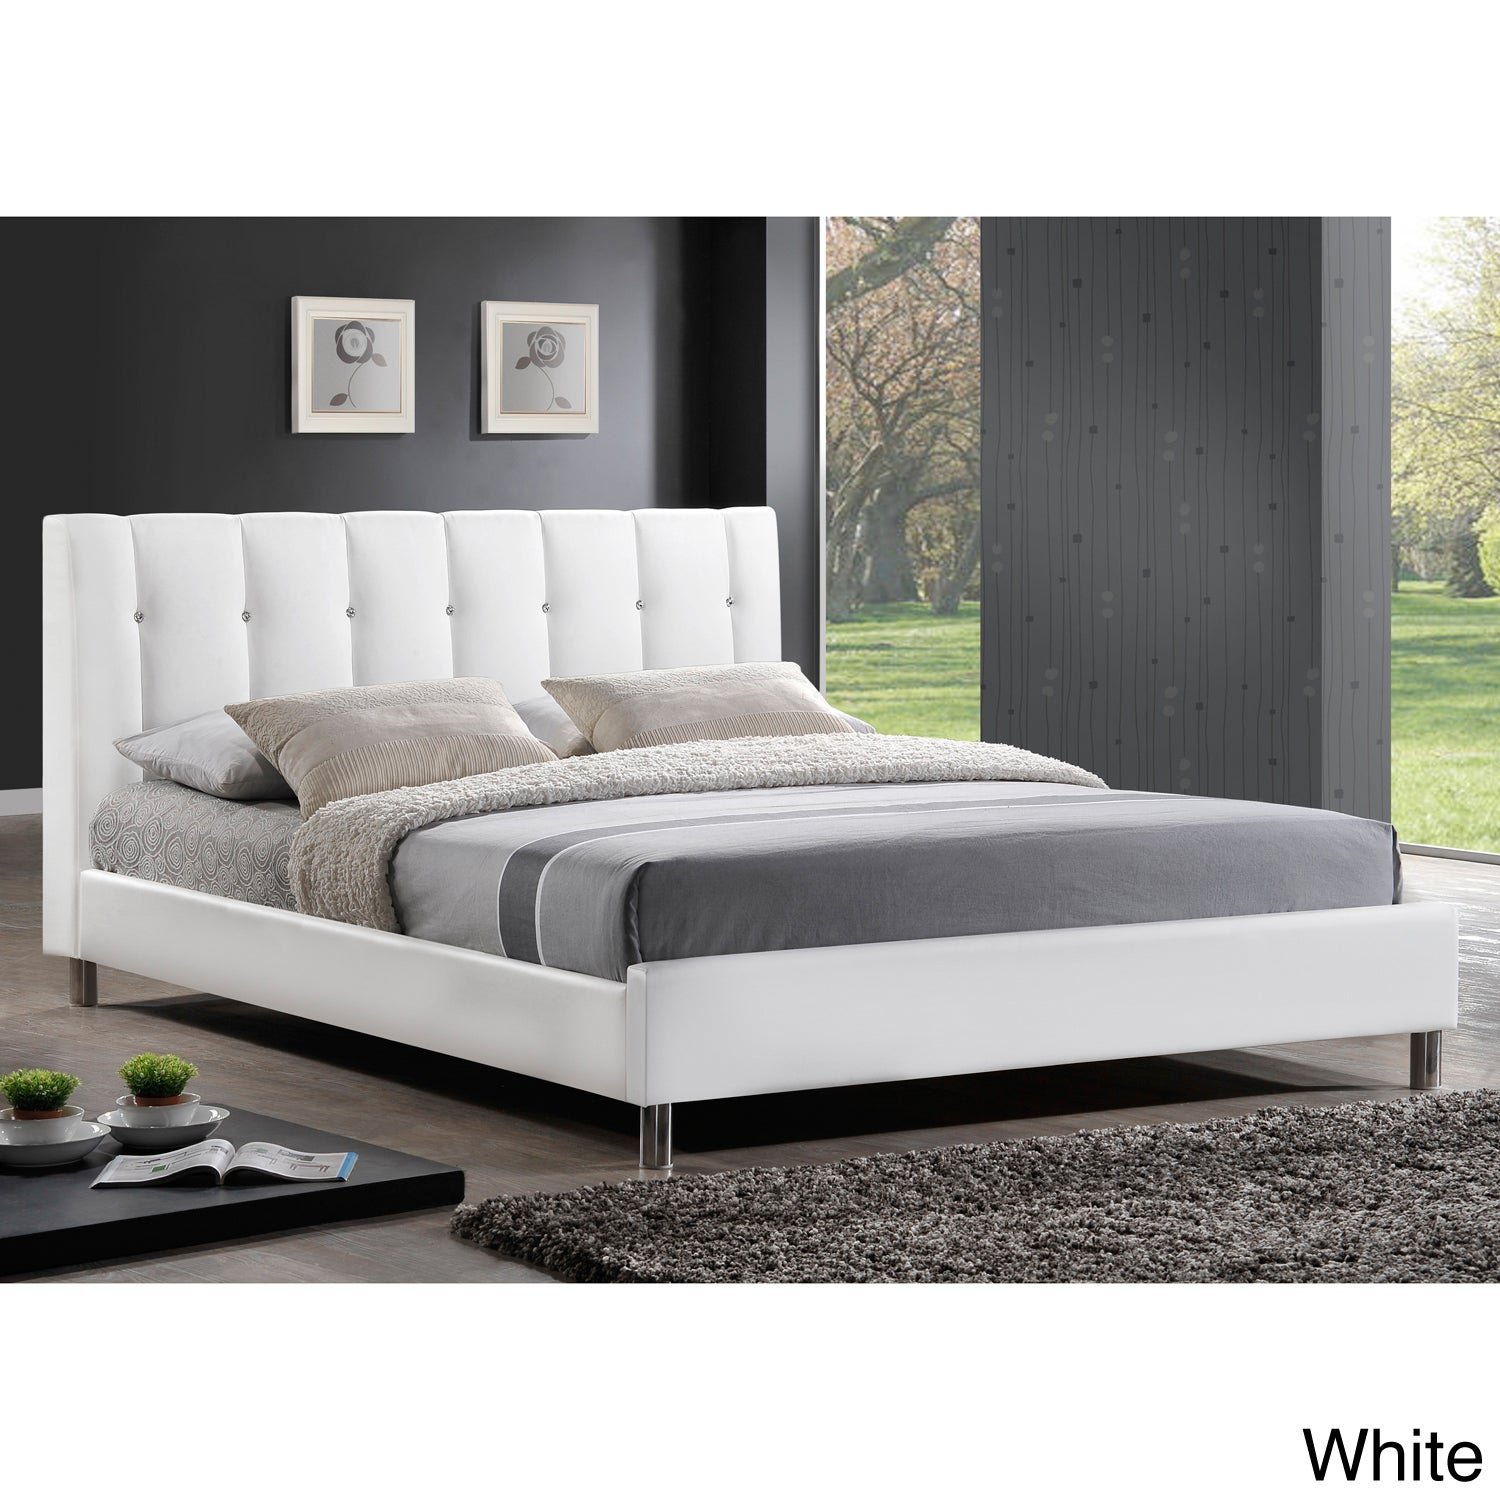 Shop Baxton Studio Vino White Modern Bed With Upholstered Headboard